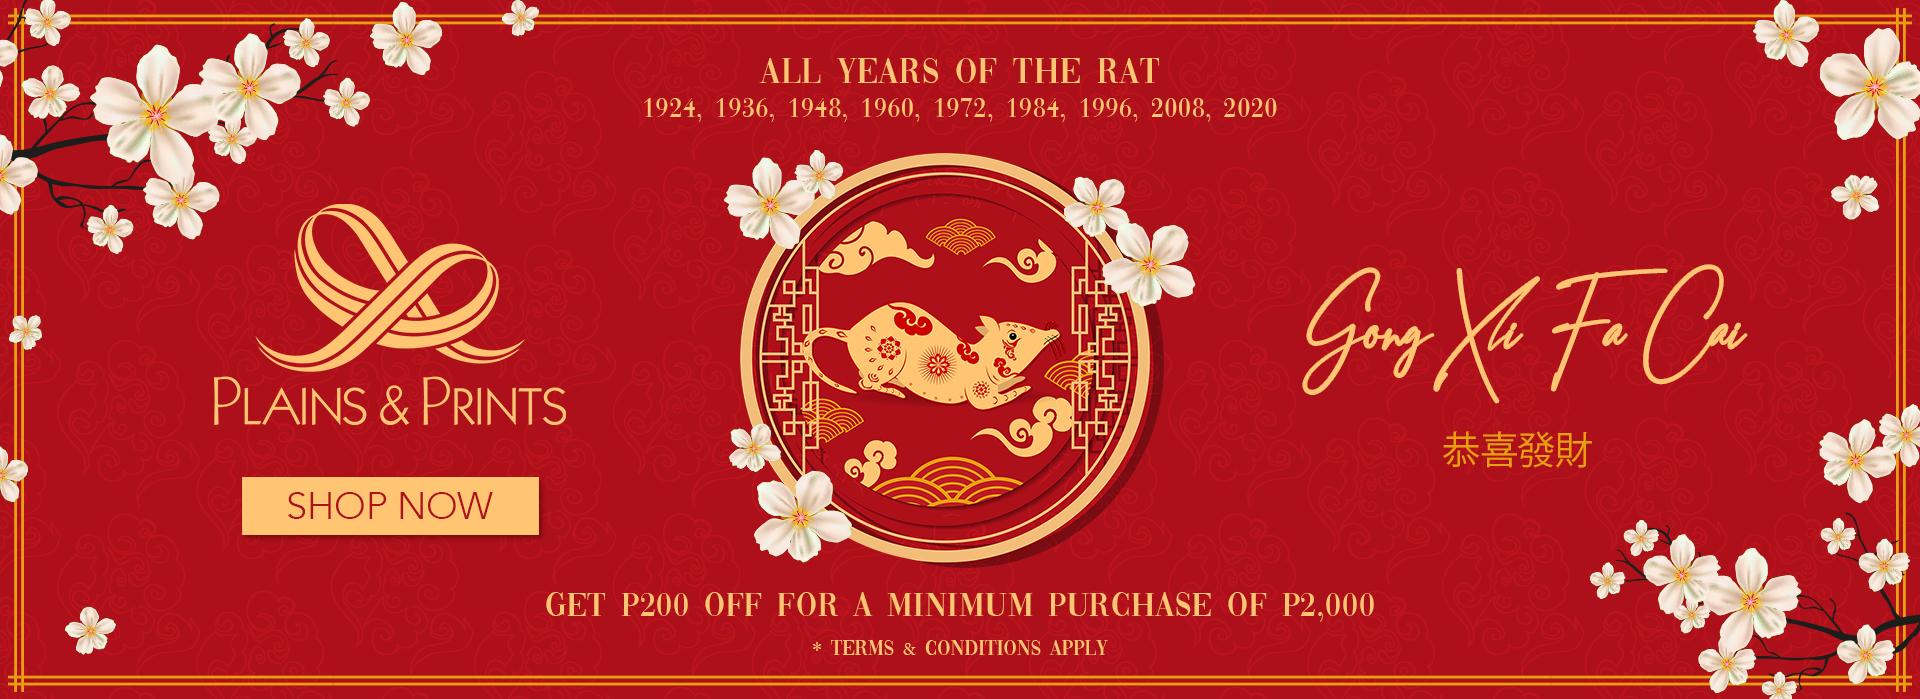 1920x699px-Plains-_-Prints-2020-Happy-Chinese-New-Year